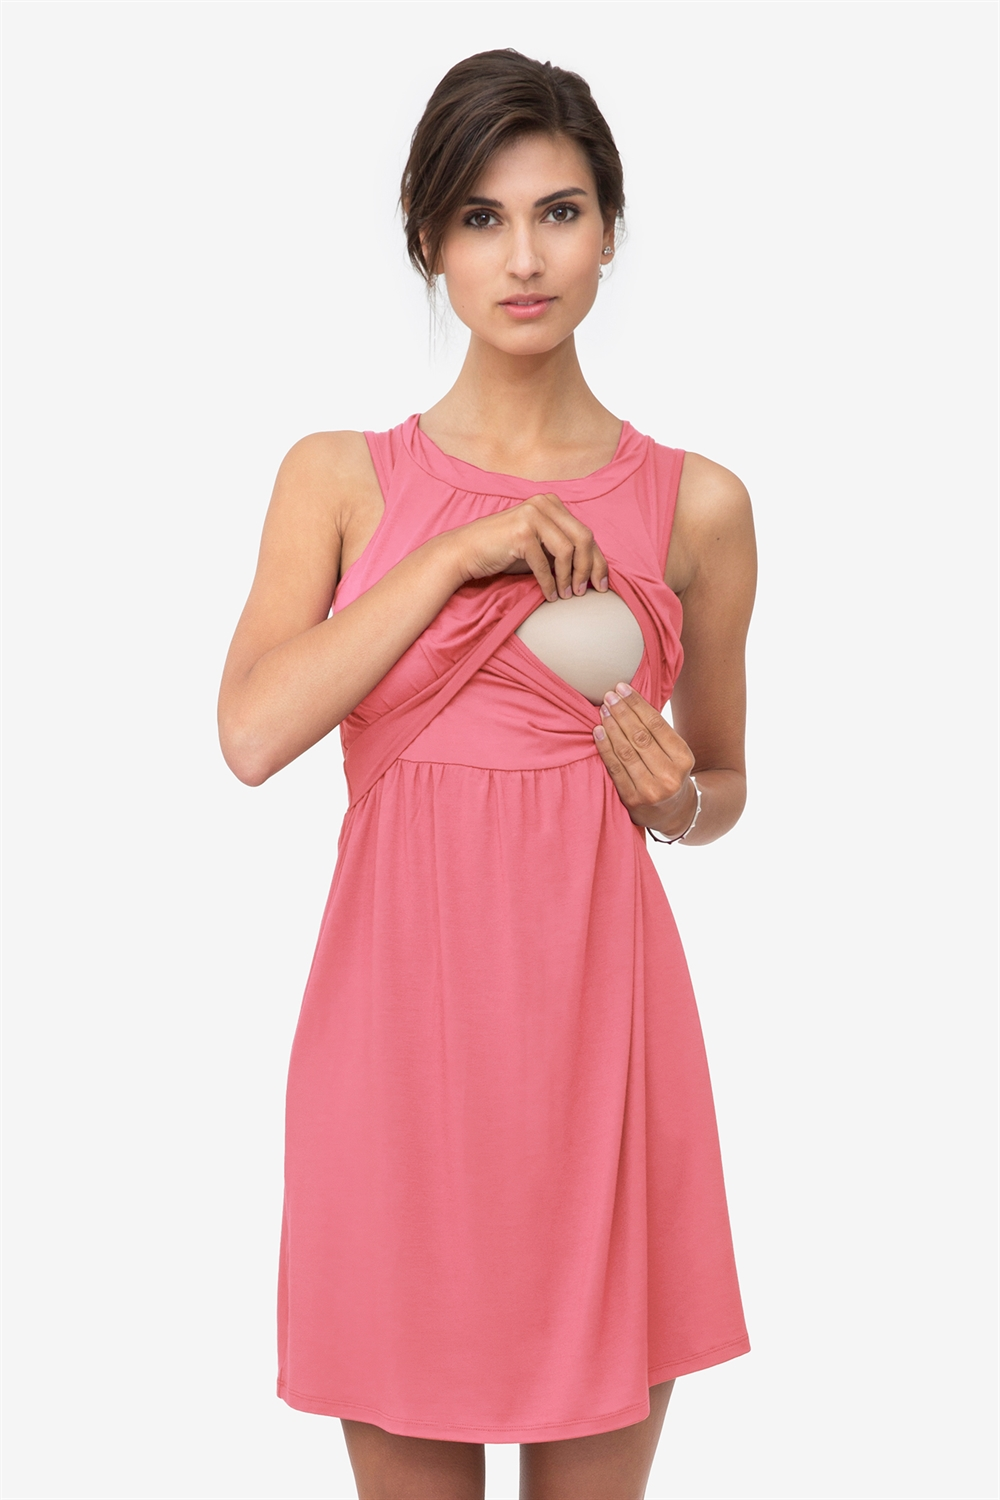 Sleeveless coral nursing dress in bamboo fibres